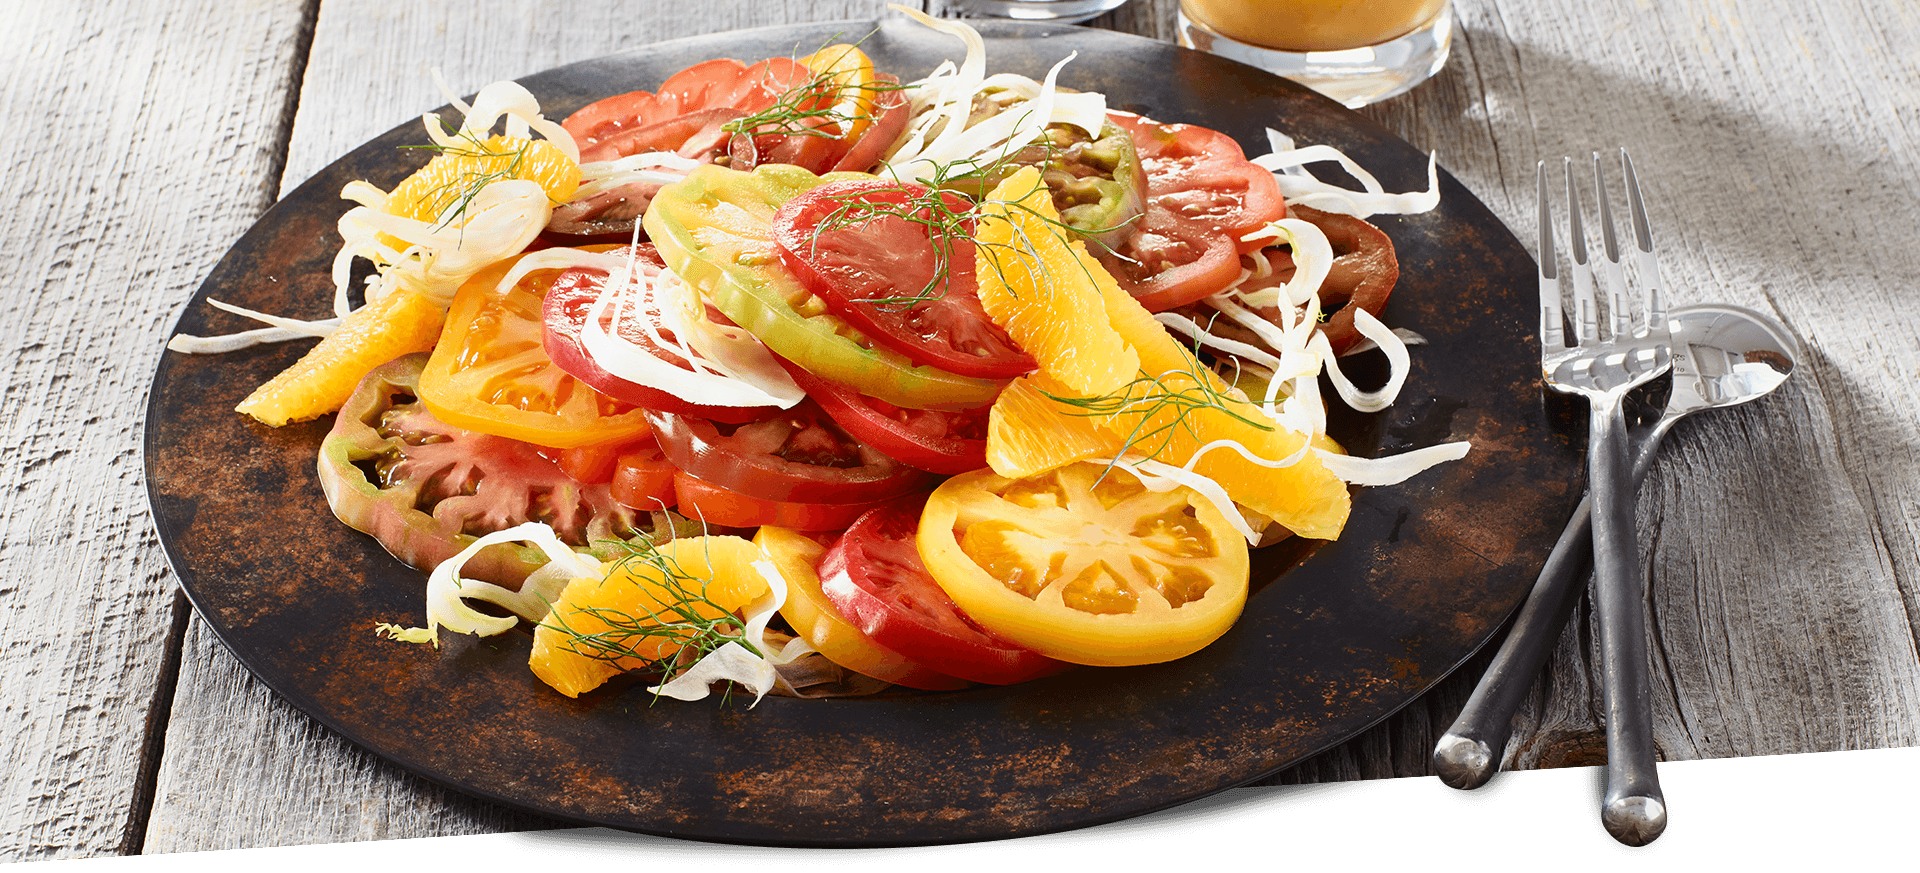 Heirloom Tomato Salad header BG